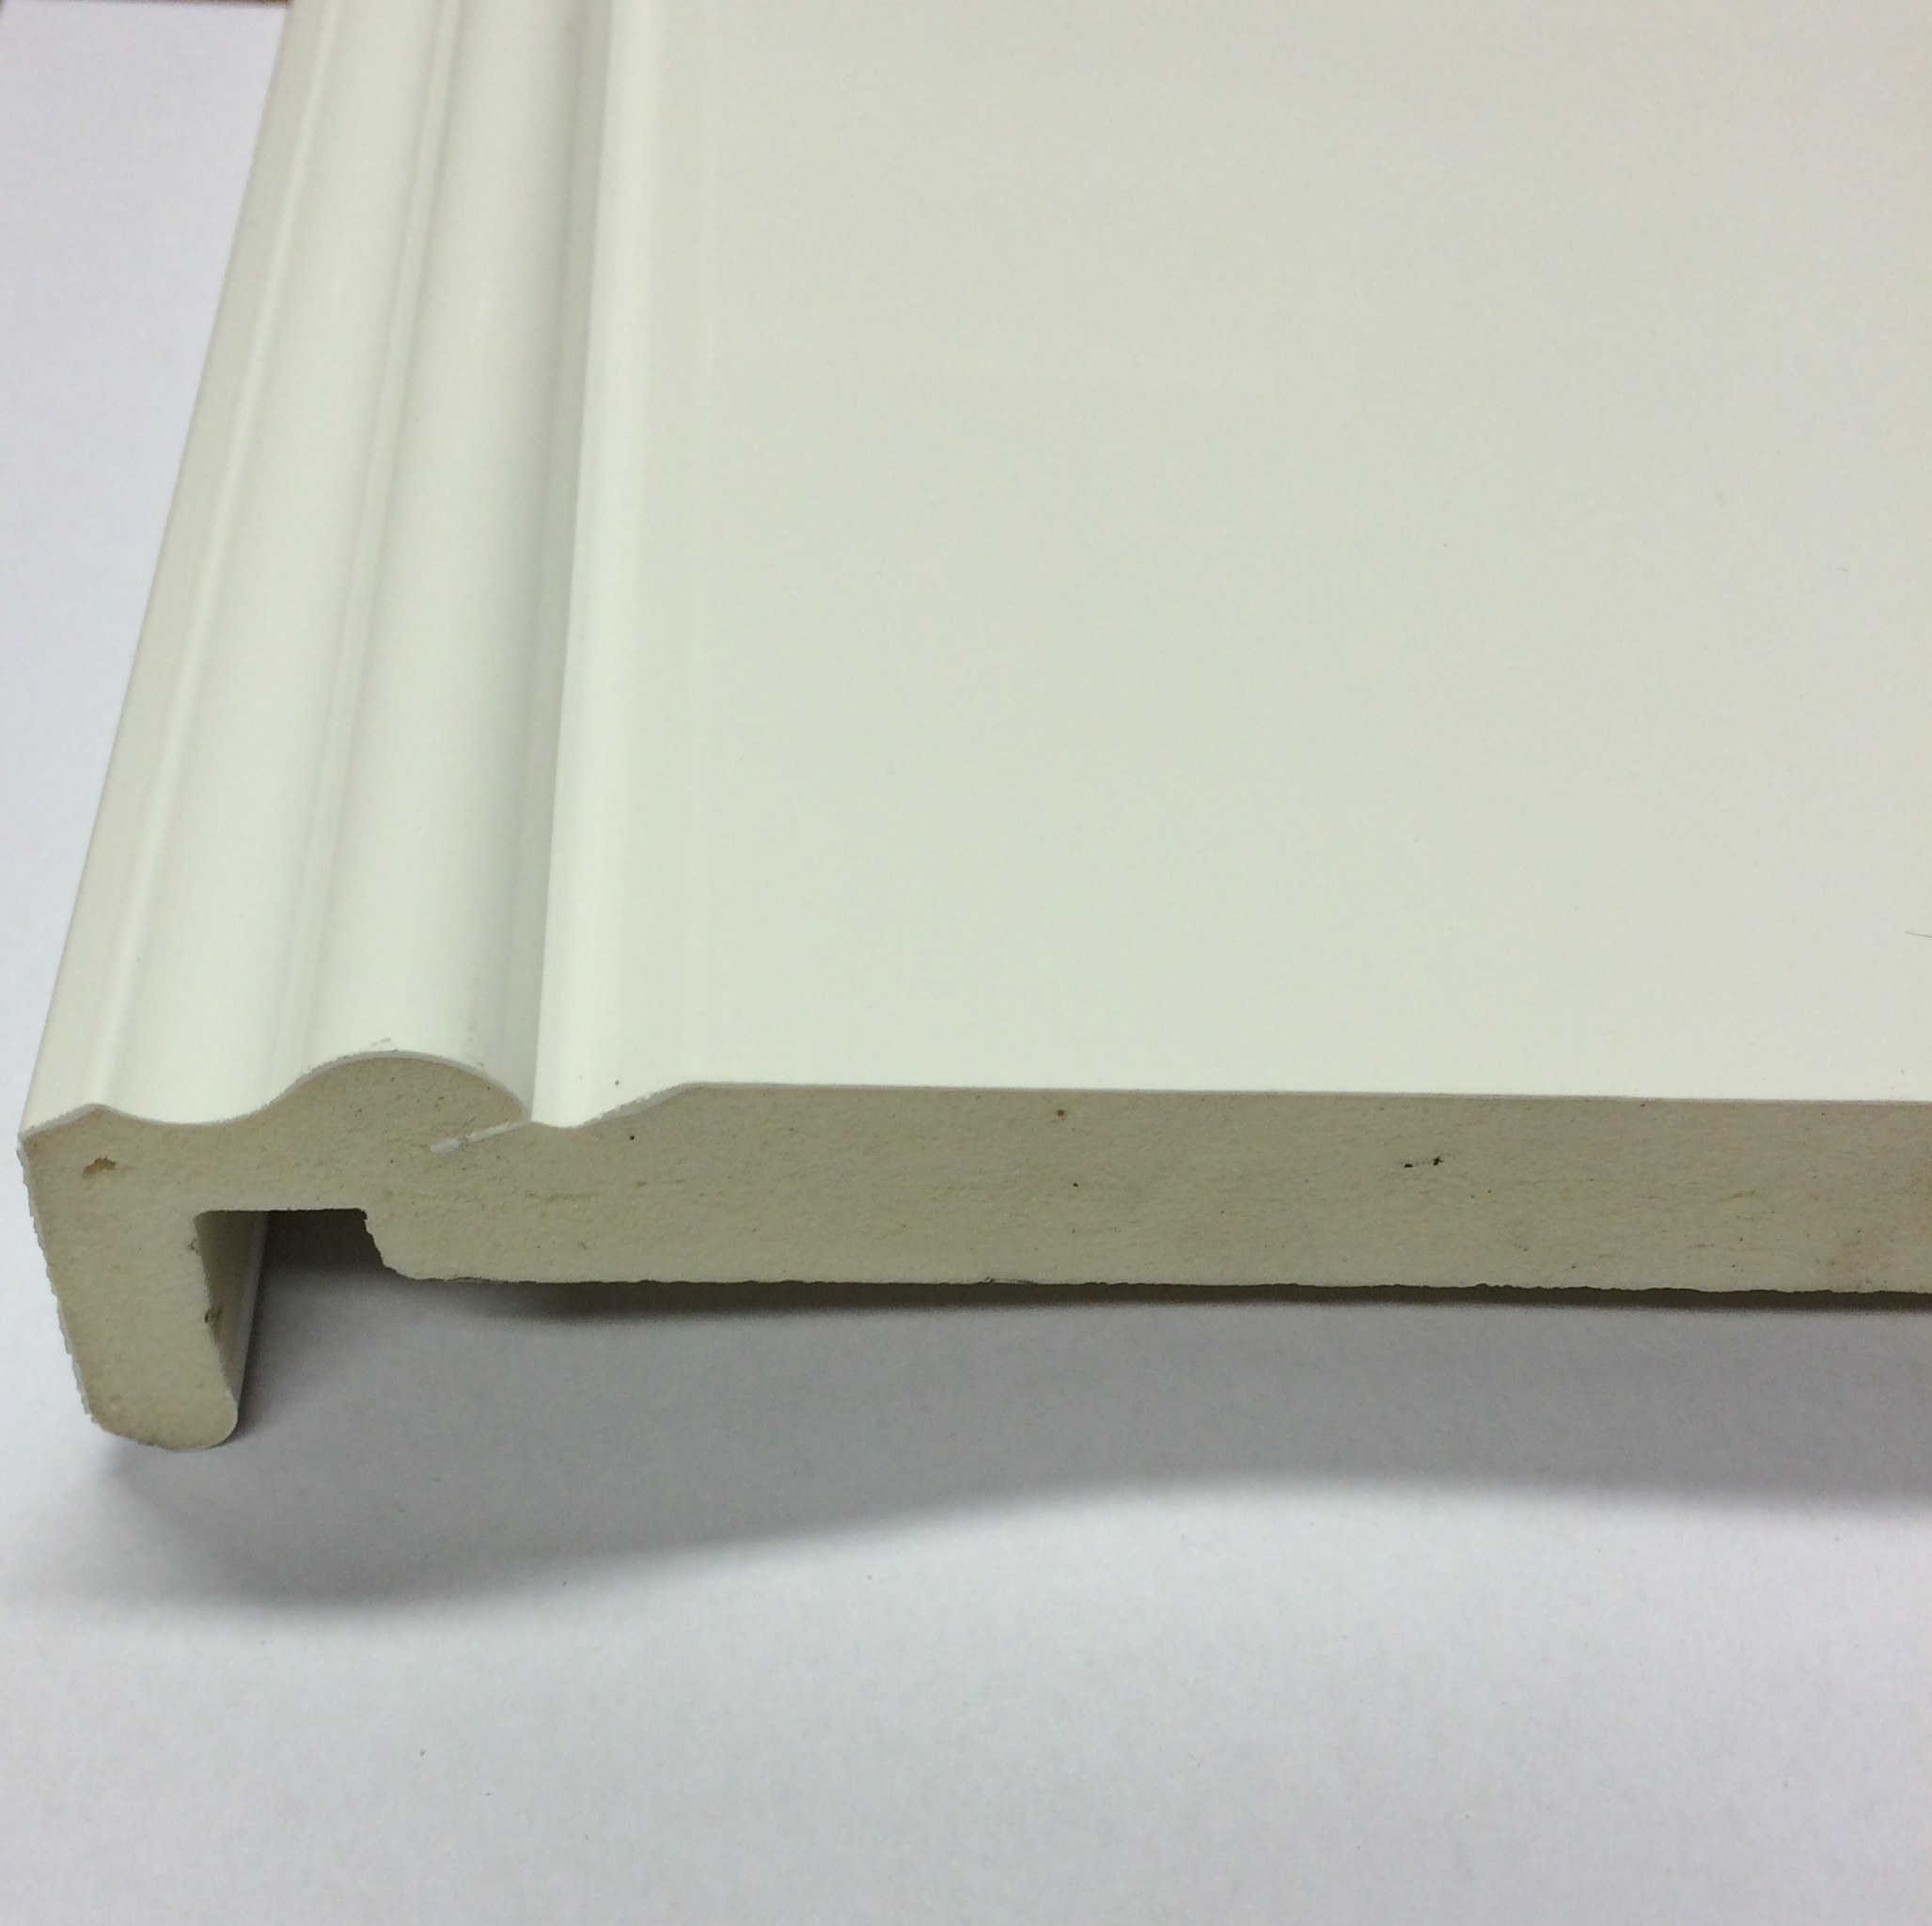 Full replacement fascia boards 20mm full replacement for Velux cladding kit